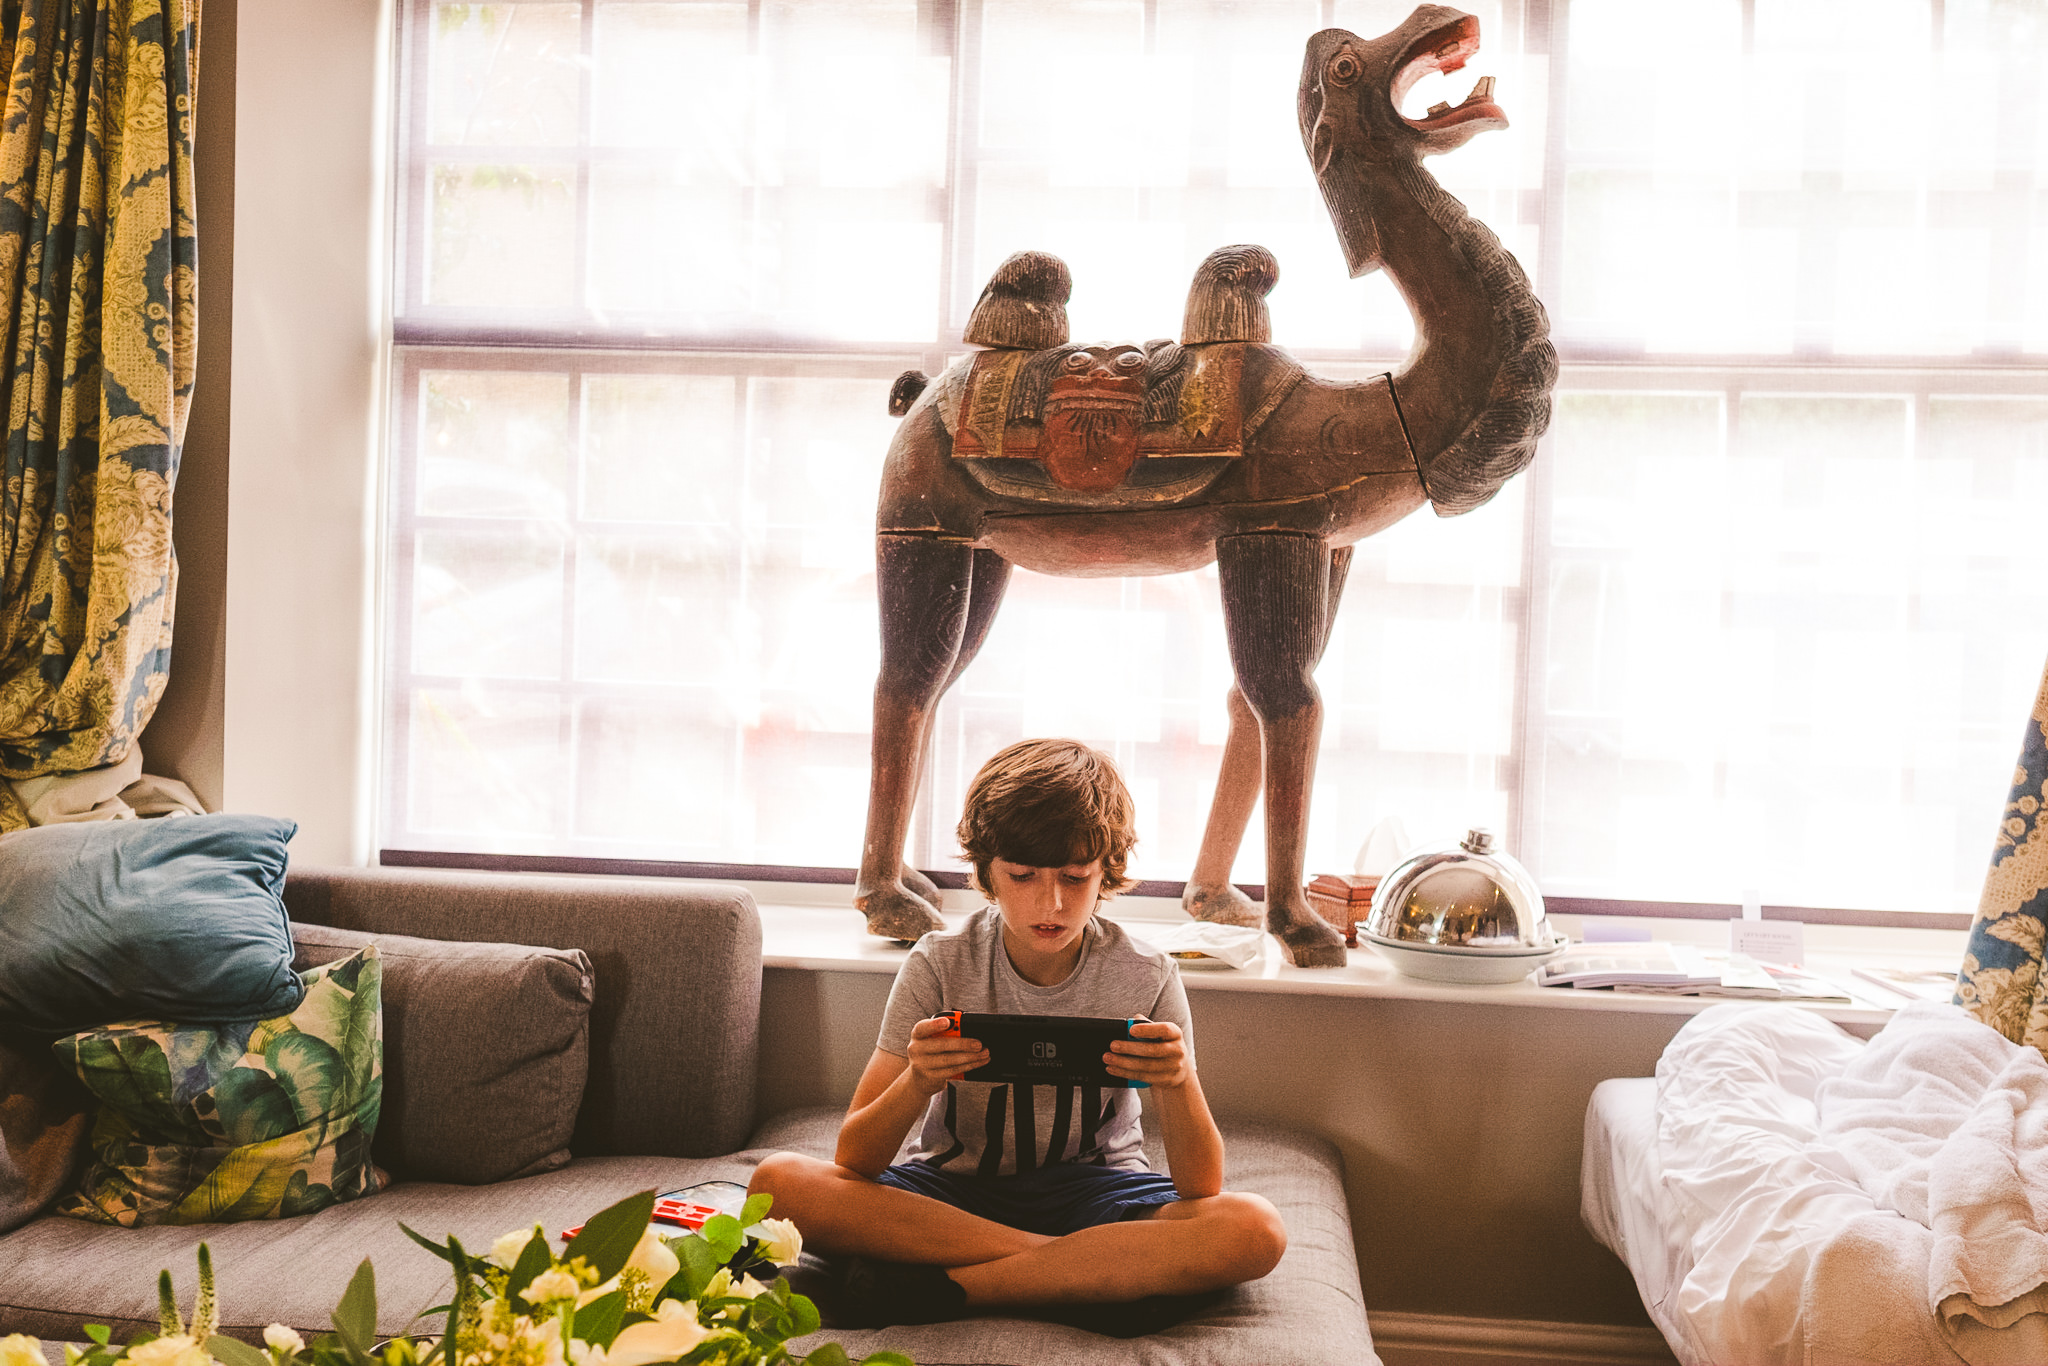 Boy plays with computer game with camel statue behind